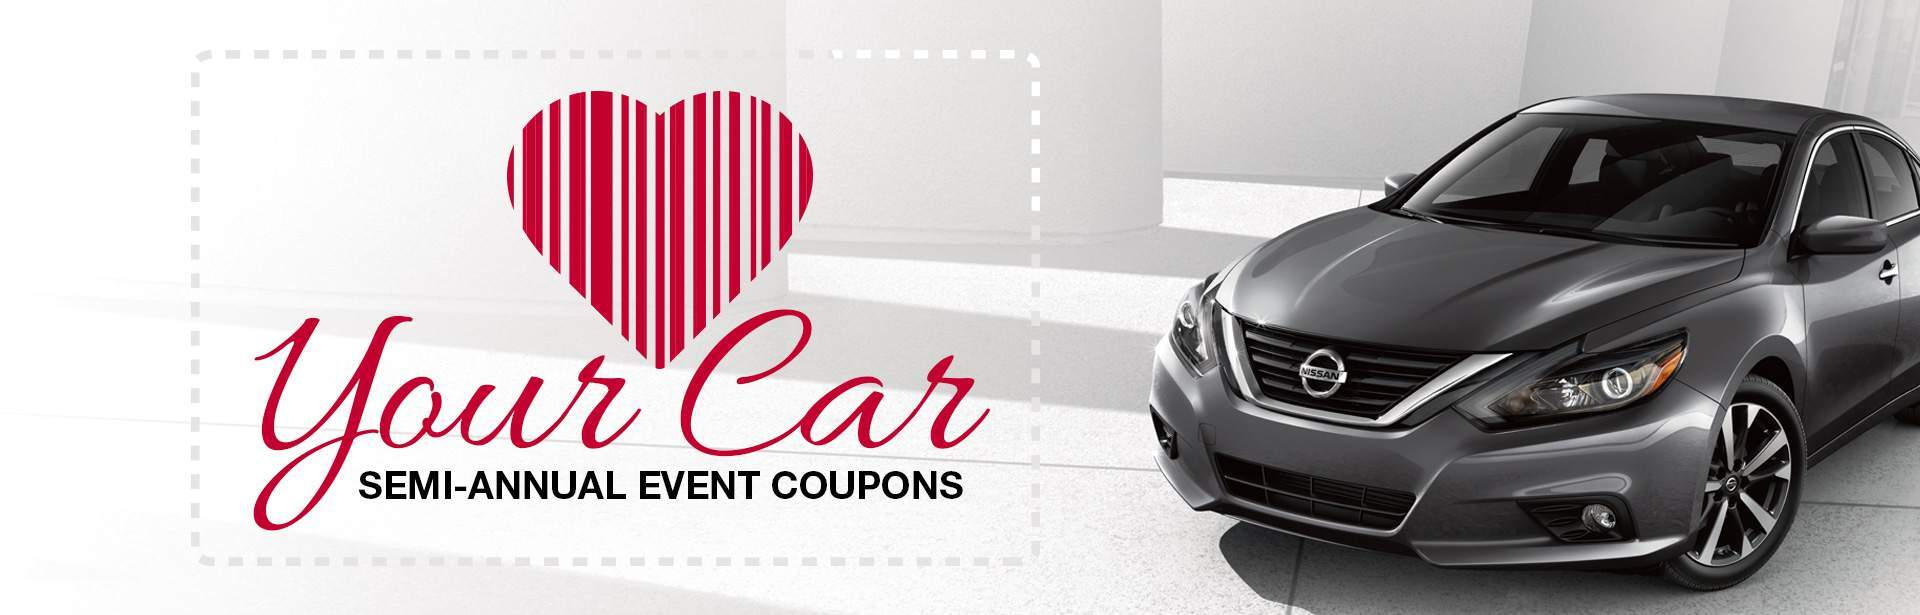 Nissan-McAlester-Heart-Your-Car-Coupons